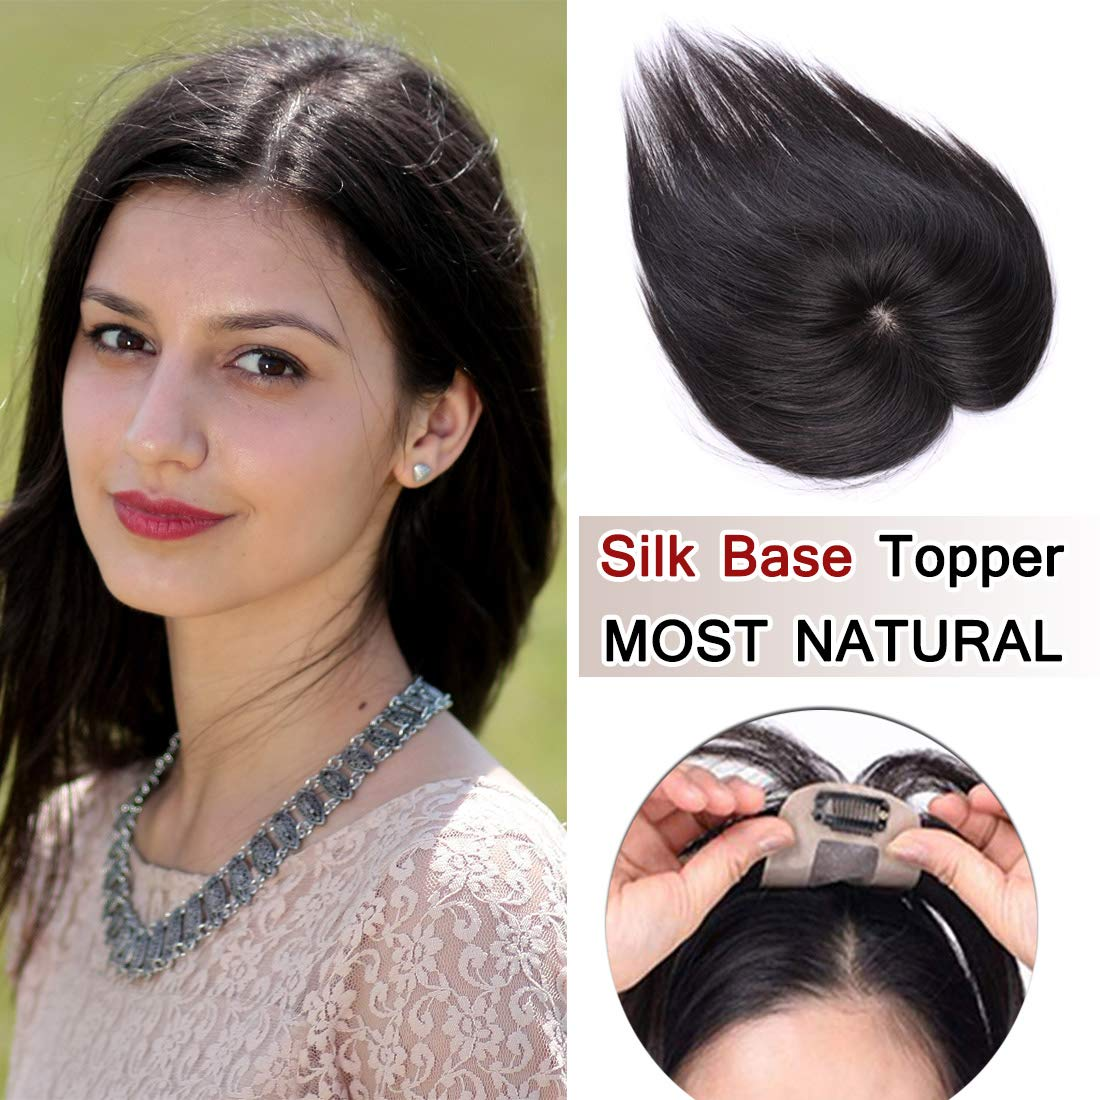 SEGO 100% Density Top Hair Pieces Silk Base Crown Topper Human Hair Clip in Hair Toppers Top Hairpieces for Women with Thinning Hair Gray Hair/Hair Loss #1B Natural Black 18 Inch 35g